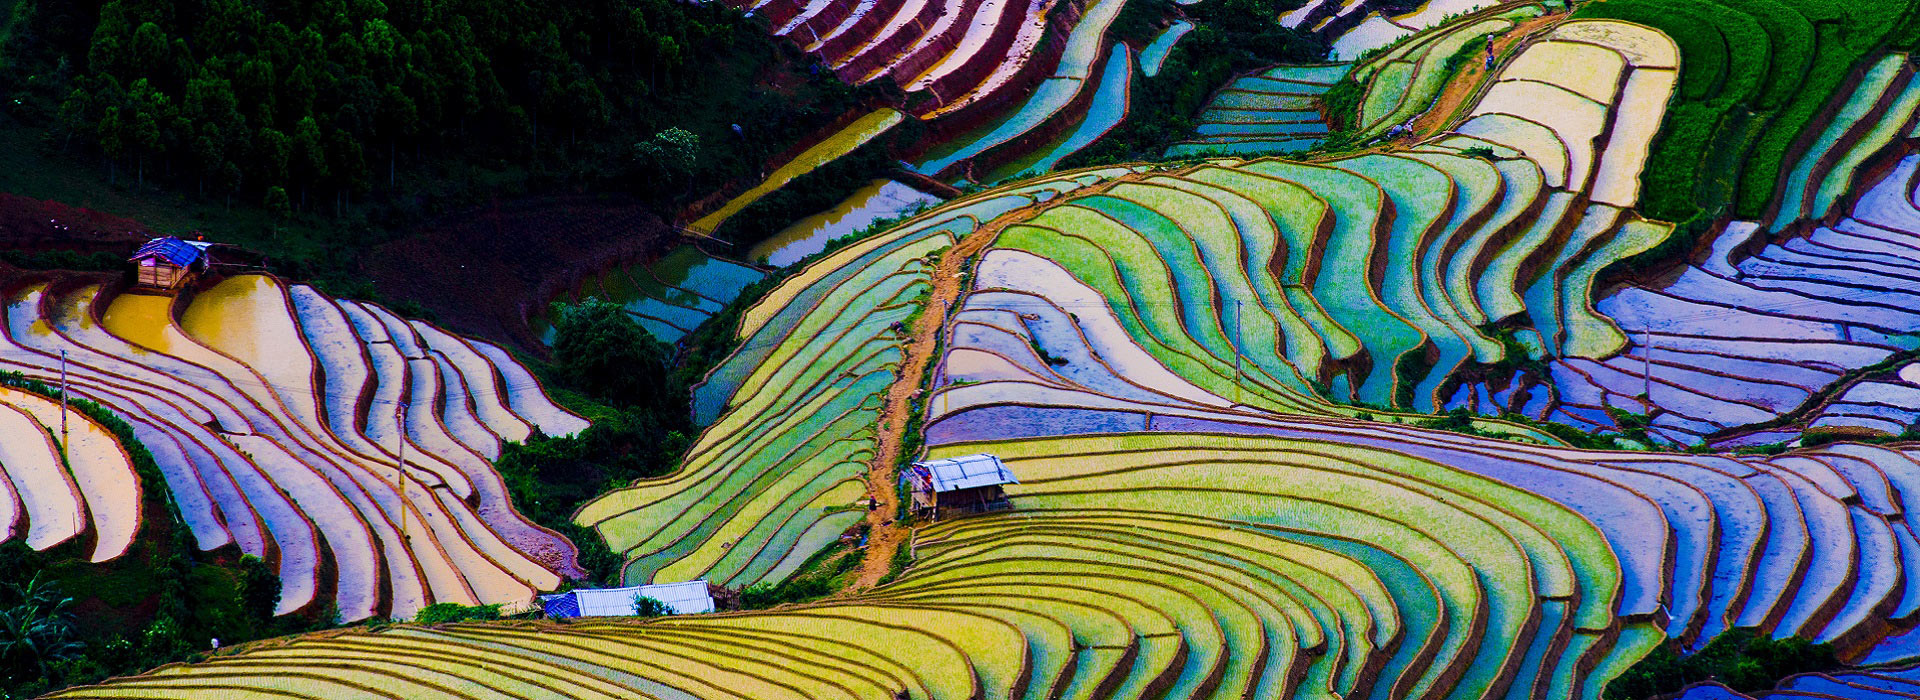 terraced_rice_field_mu_cang_chai